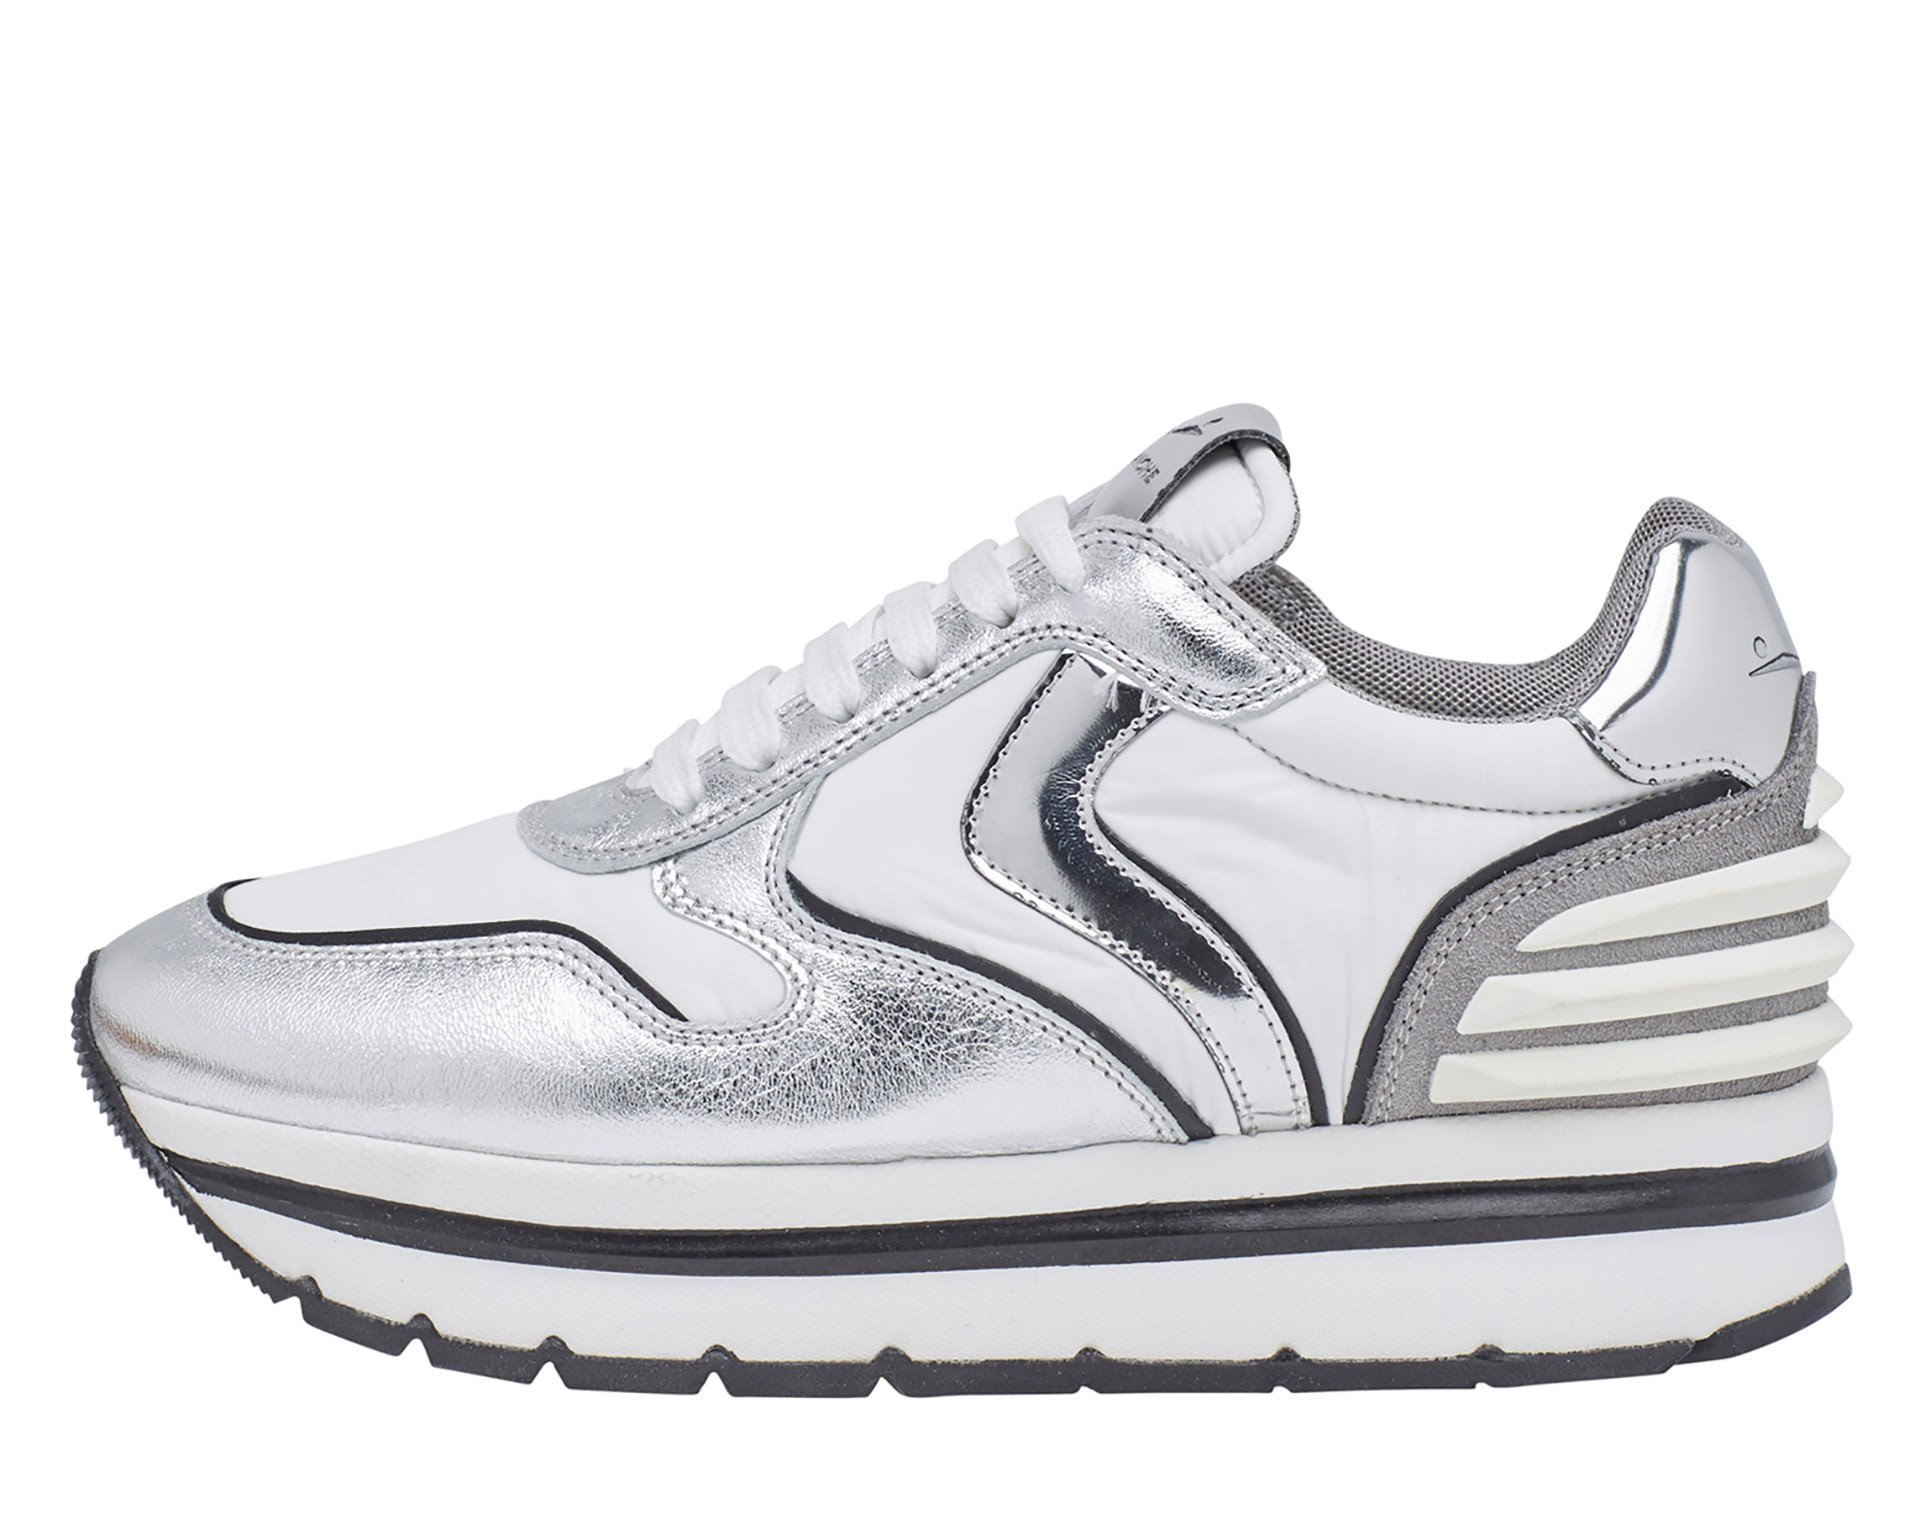 MAY POWER - Leather and fabric sneakers - White/Silver